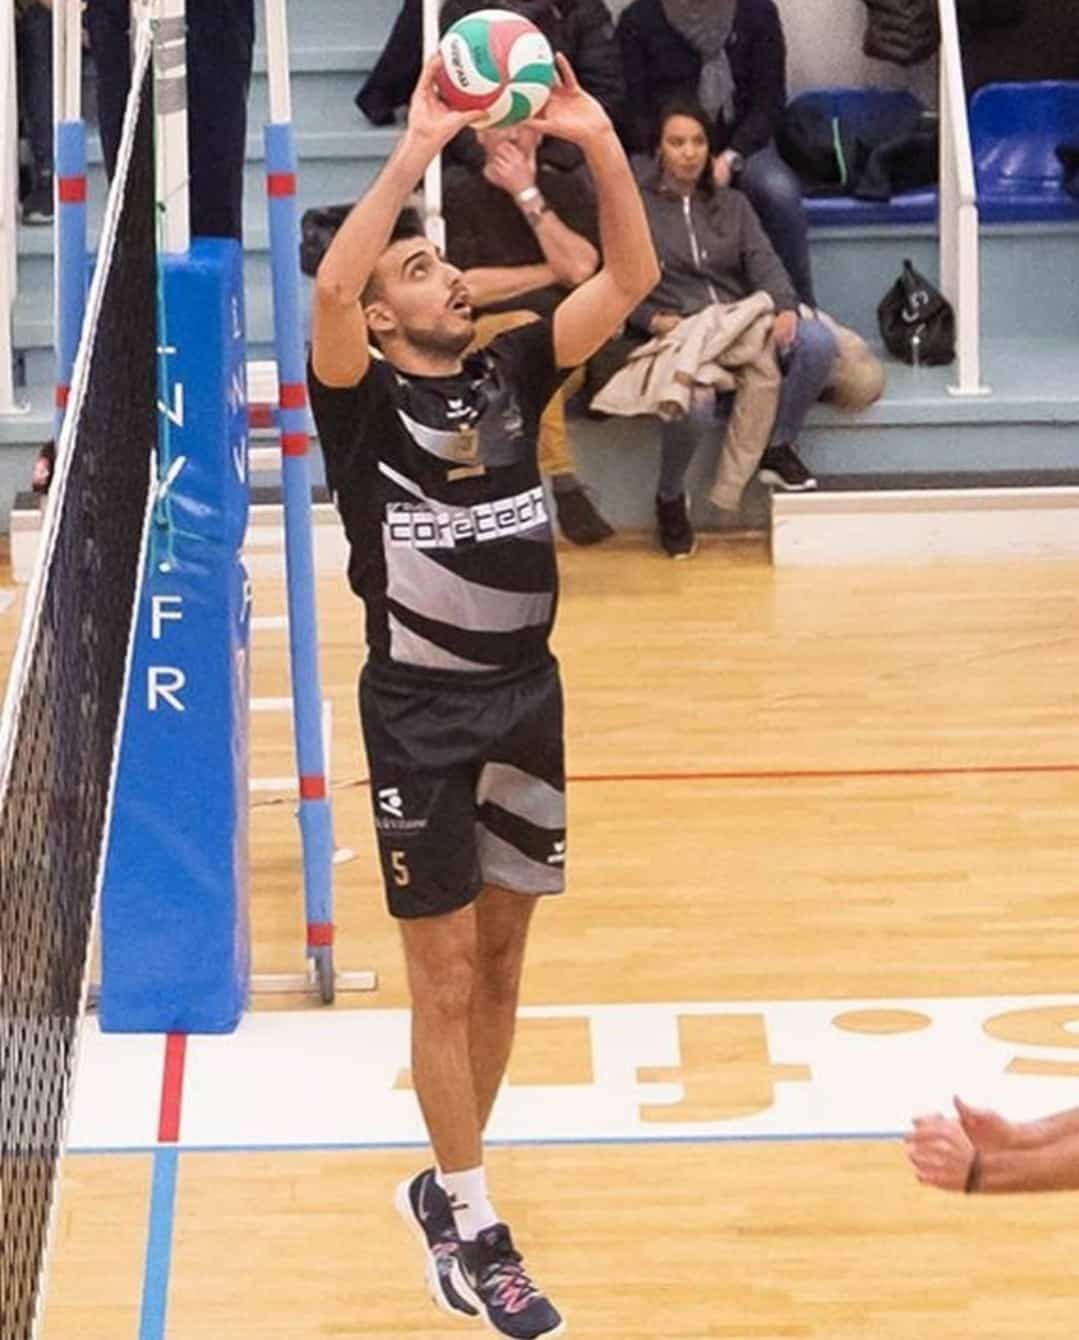 interview-volleypack-les-chaussures-miguel-tavares-rennes-volley-35-19